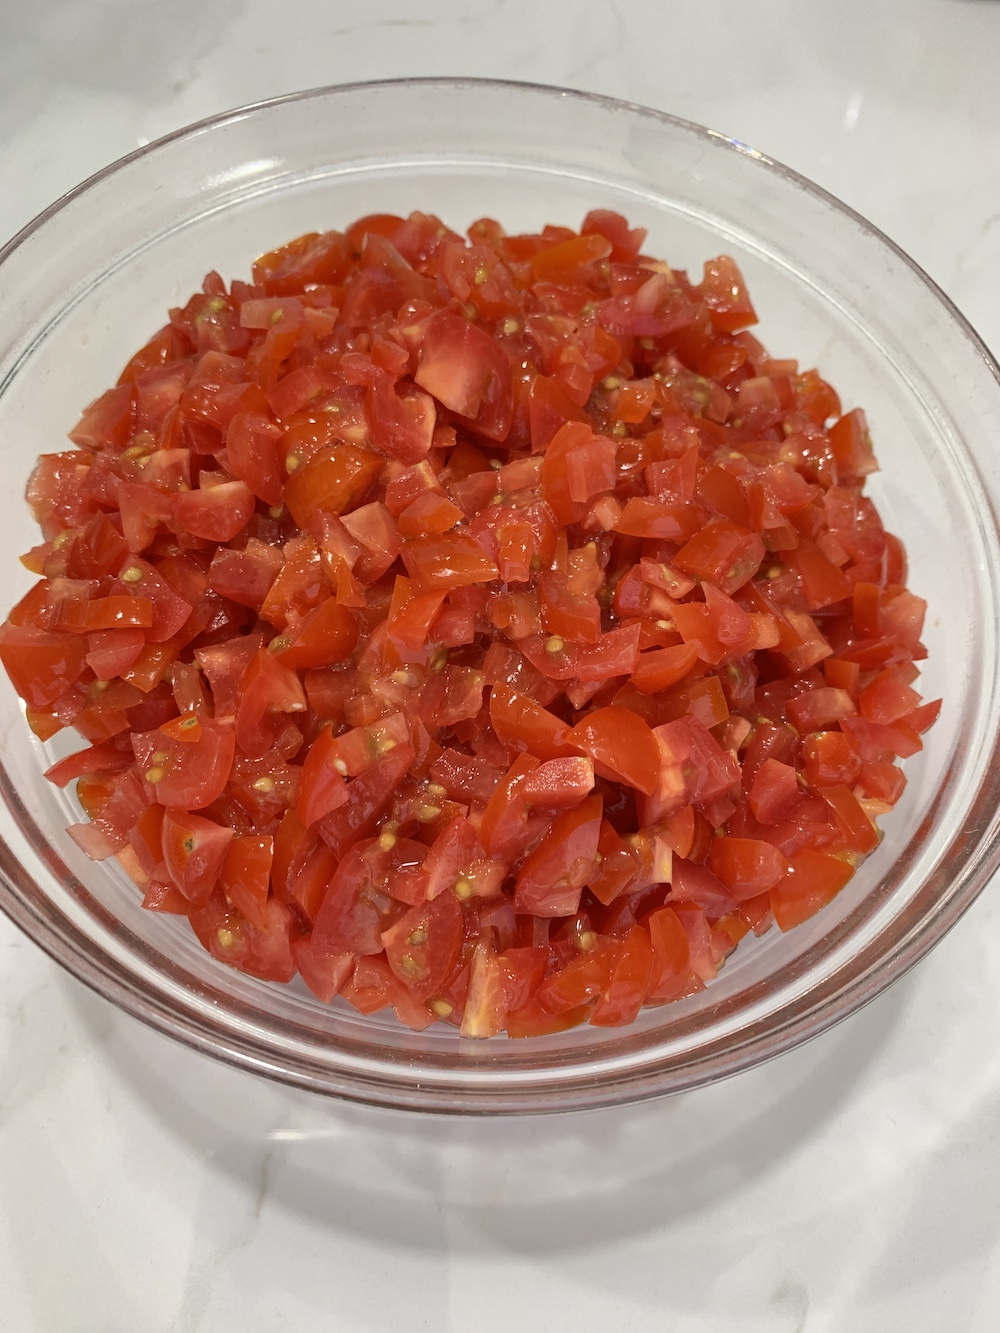 Grape Tomato Bruschetta, a Quick and Easy Appetizer Diced Grape Tomatoes #Bruschetta #GrapeTomatoes #TomatoBruschetta #QuickandEasy #BudgetFriendly #Affordable #Healthy #Appetizer #AffordableFood #SaveTime #SaveMoney